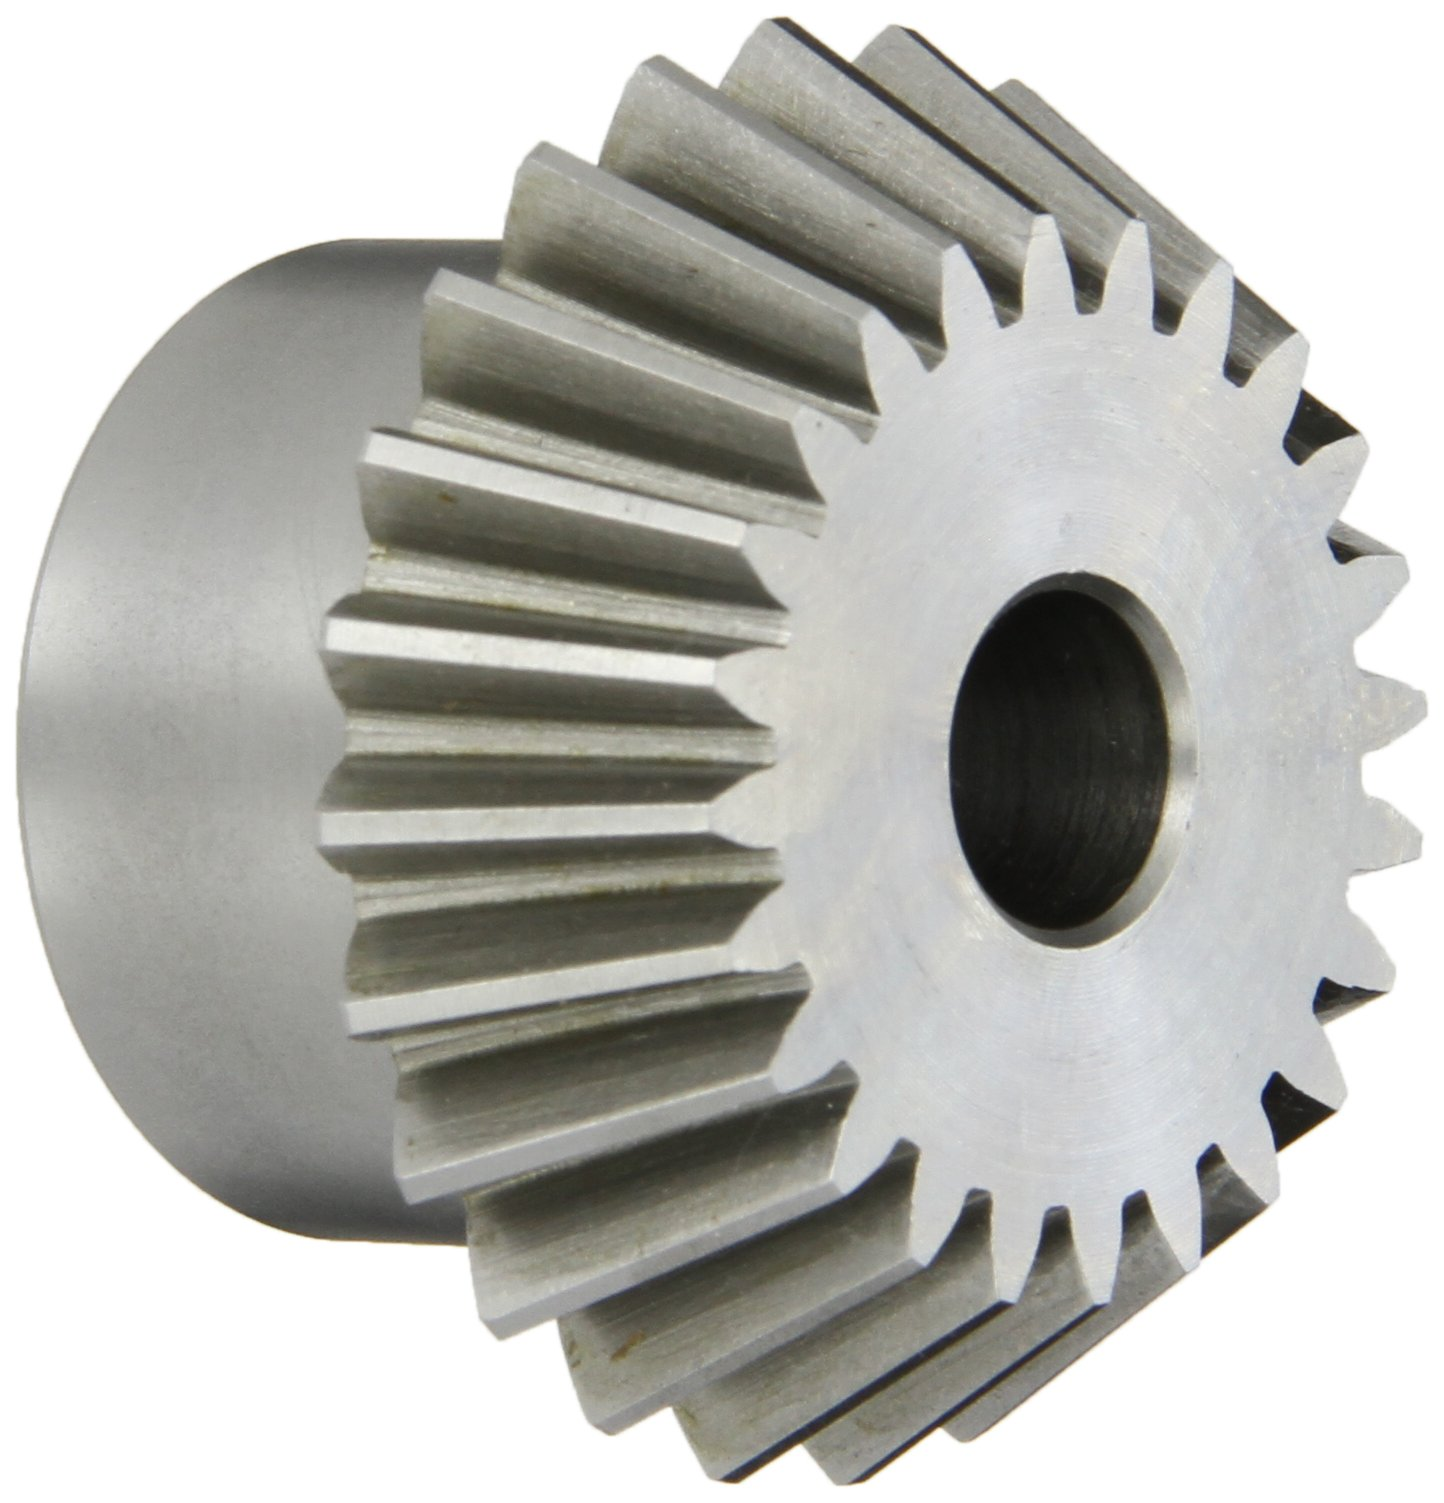 "Boston Gear PA4212Y-P Bevel Pinion Gear, 2:1 Ratio, 0.500"" Bore, 12 Pitch, 24 Teeth, 20 Degree Pressure Angle, Straight Bevel, Steel"